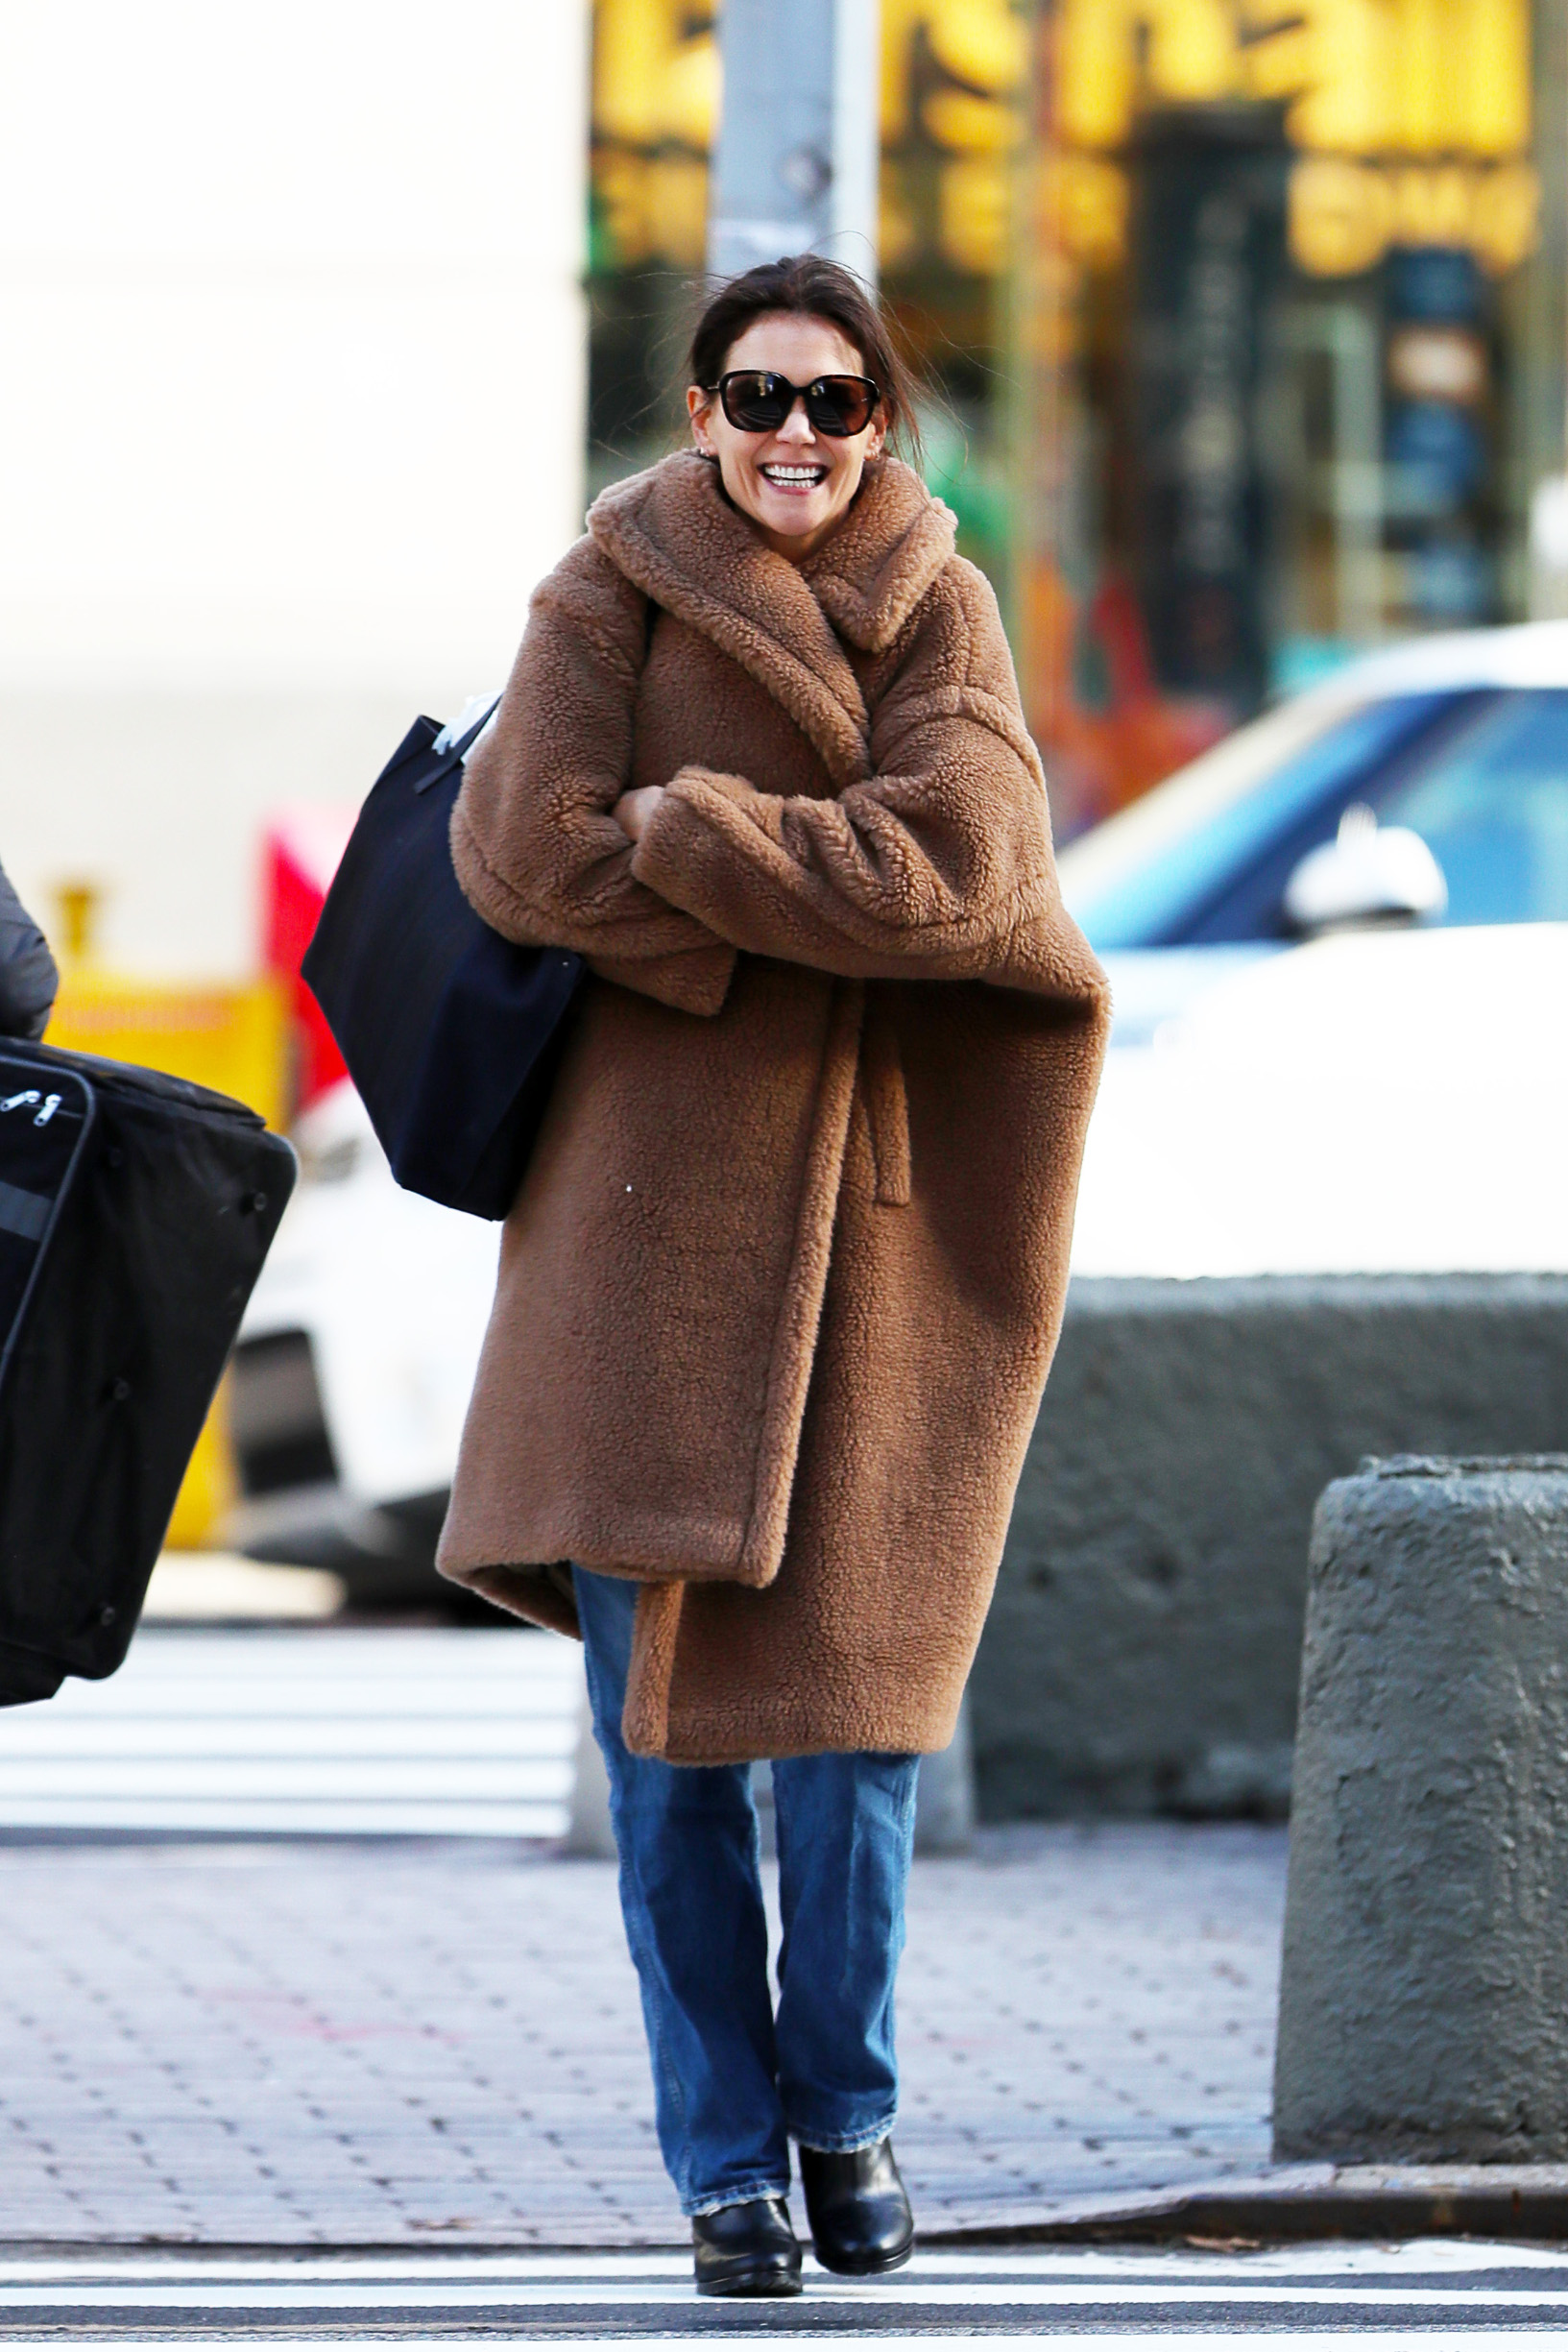 12/15/2019 EXCLUSIVE: Katie Holmes flashes a big smile as bundles up while out on a stroll in New York City. The 40 year old actress wore an identical outfit as the previous day, a brown teddy coat, blue jeans, and black boots., Image: 488408542, License: Rights-managed, Restrictions: Exclusive NO usage without agreed price and terms. Please contact sales@theimagedirect.com, Model Release: no, Credit line: TheImageDirect.com / The Image Direct / Profimedia